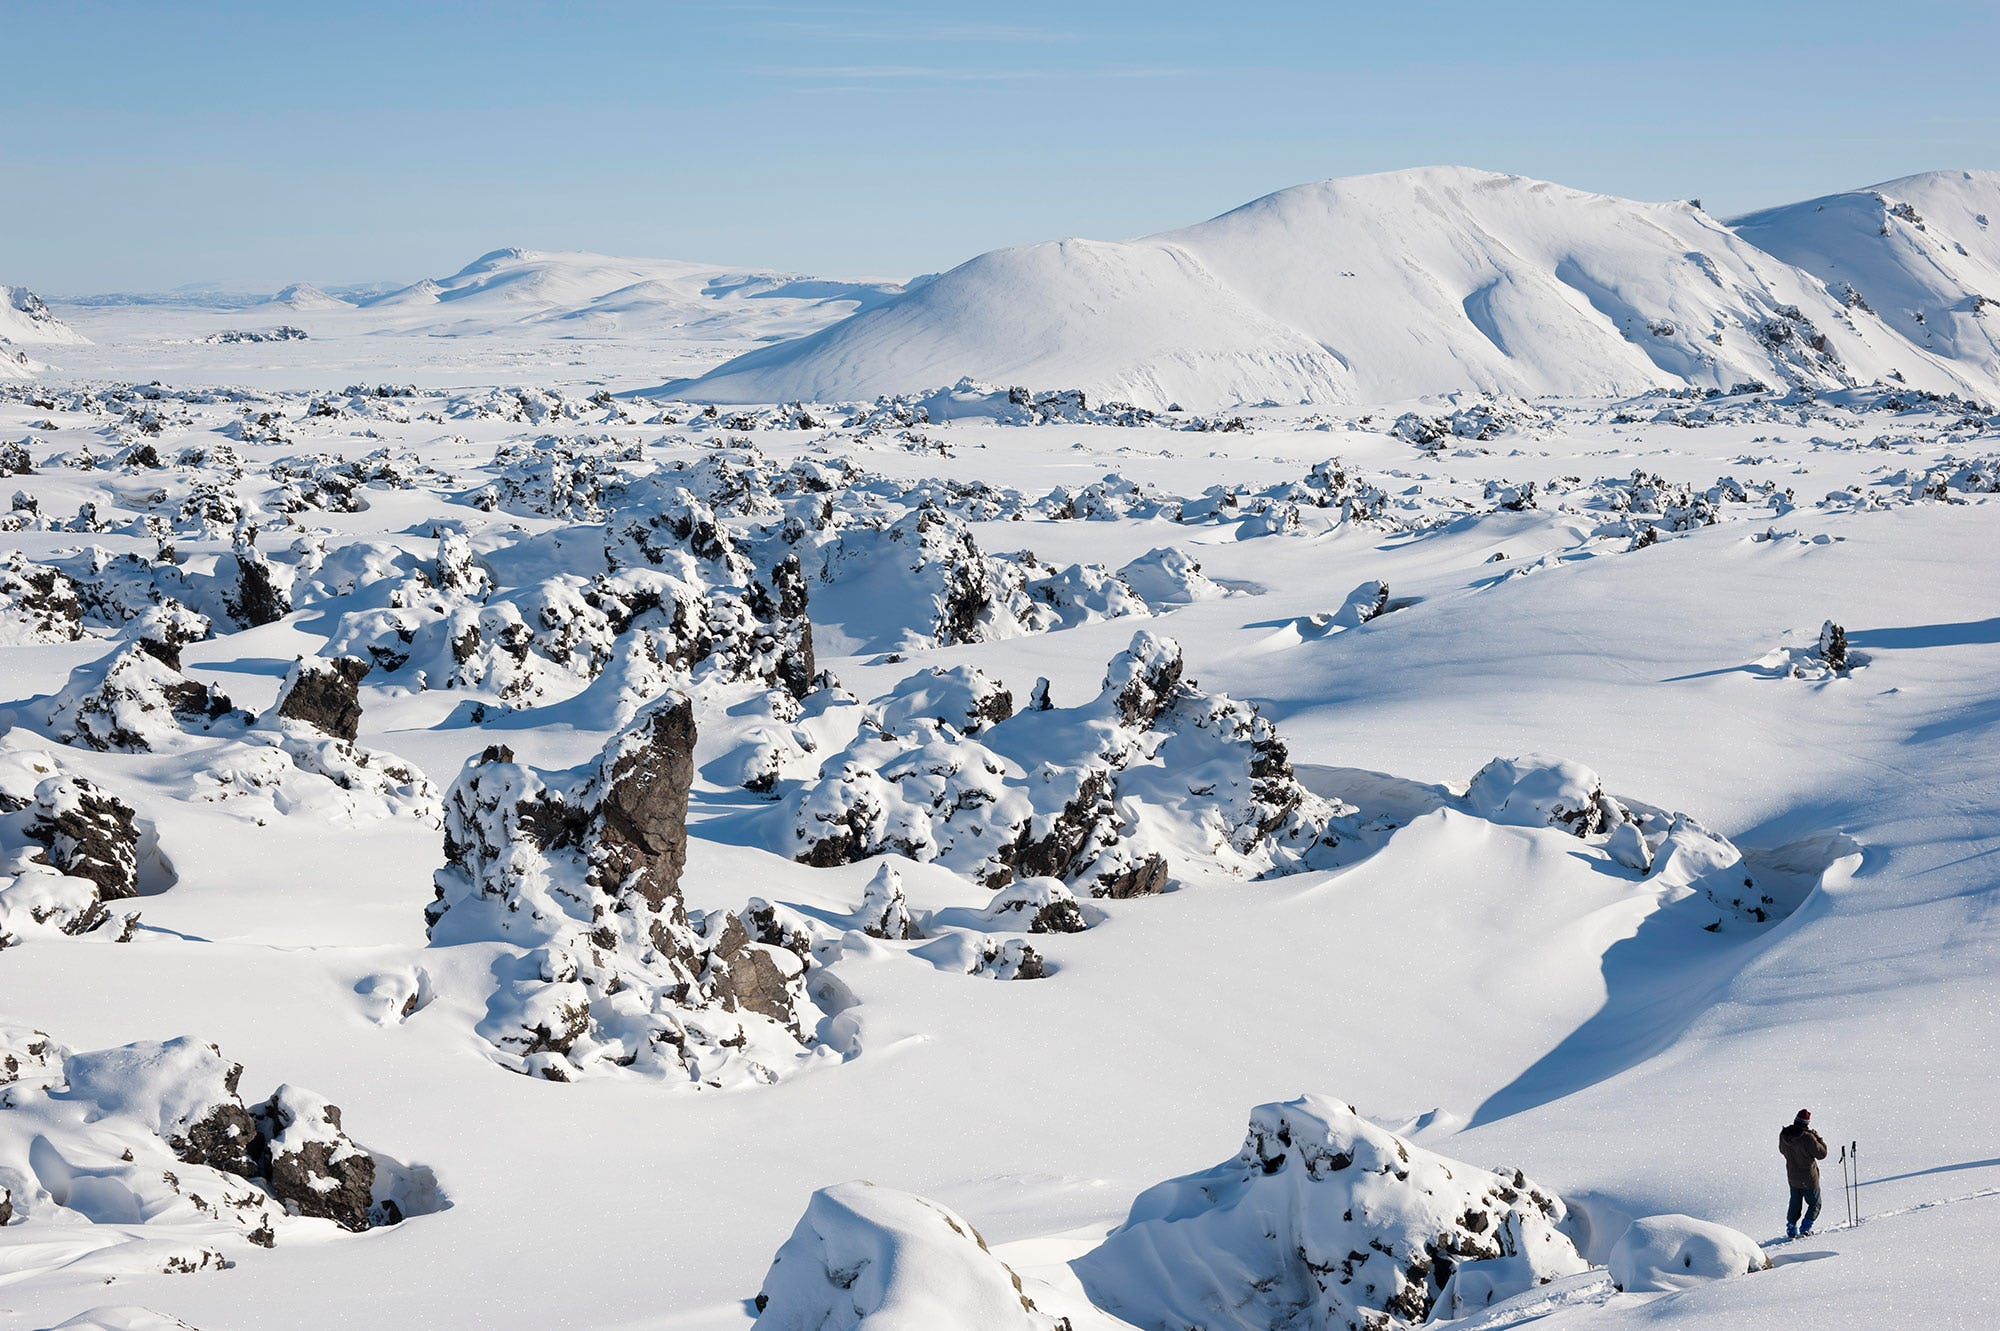 The Highlands of Iceland cloaked in snow.